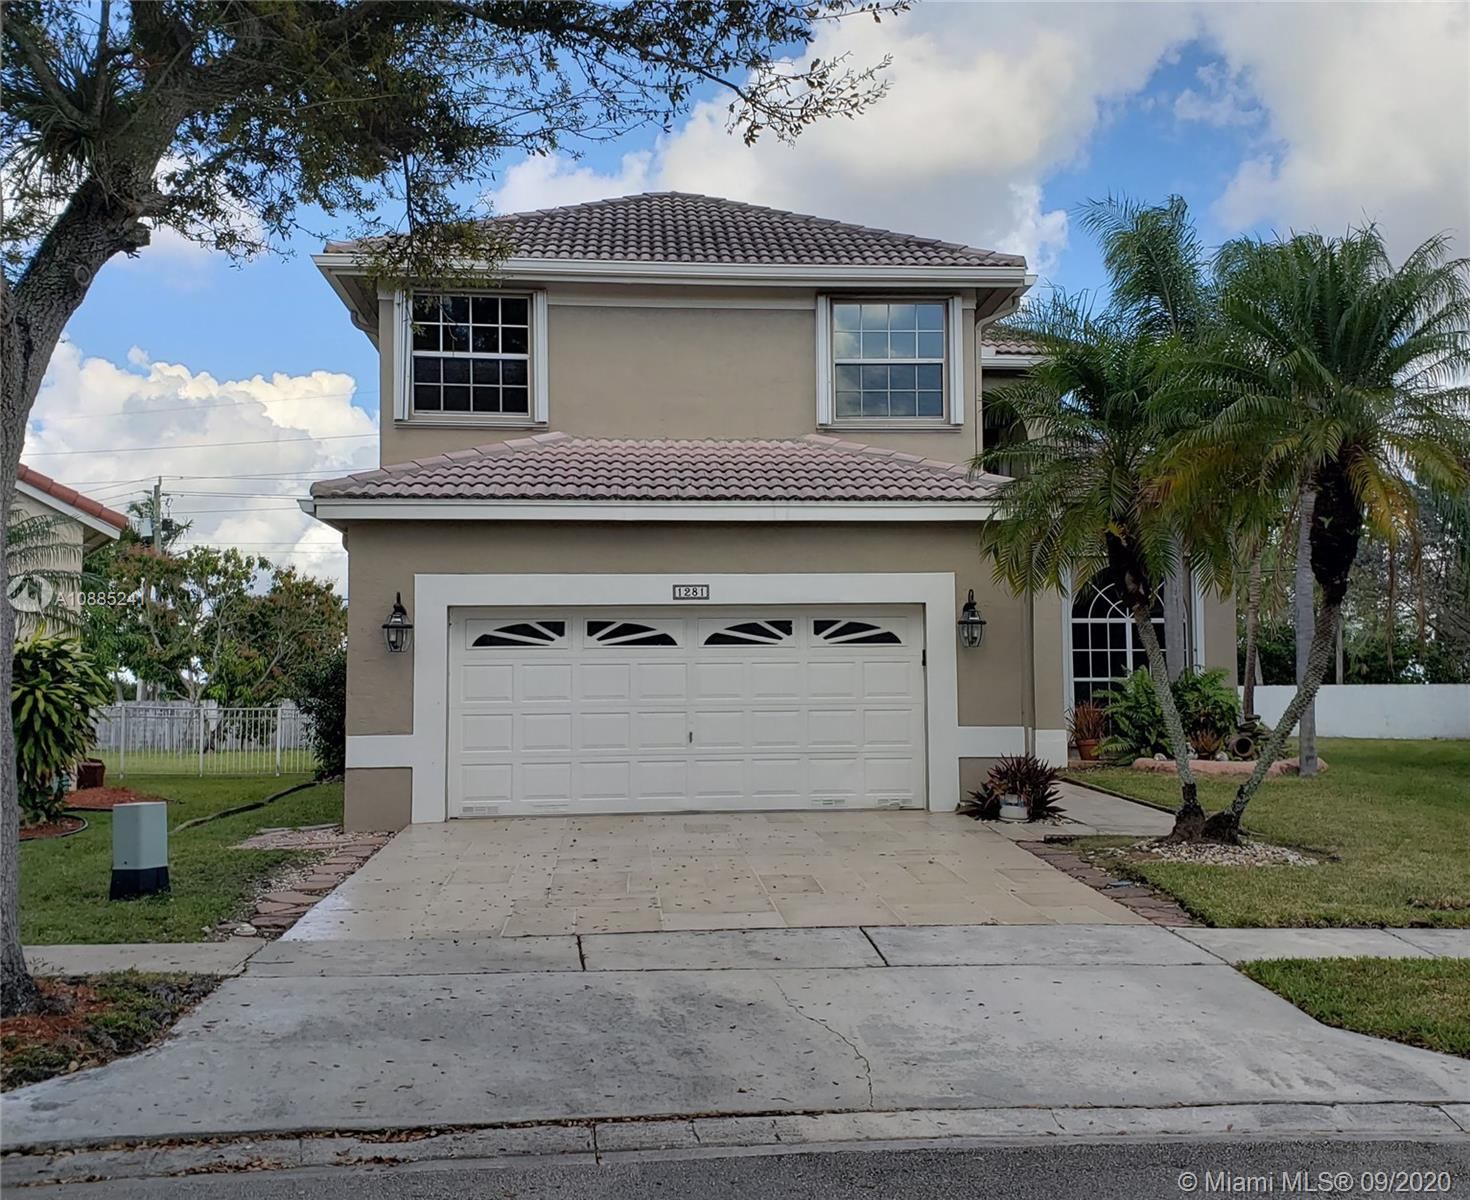 5 Bedroom 3 Full Bath Pool Home in Southwest Broward.  2 story home features a ground level full bathroom and bedroom. This oversized lot offers plenty of space for the puppy and kids to run around.  Rolling Hurricane shutters on ALL windows.  HOA Covers Basic cable and internet.  Come see the property today!